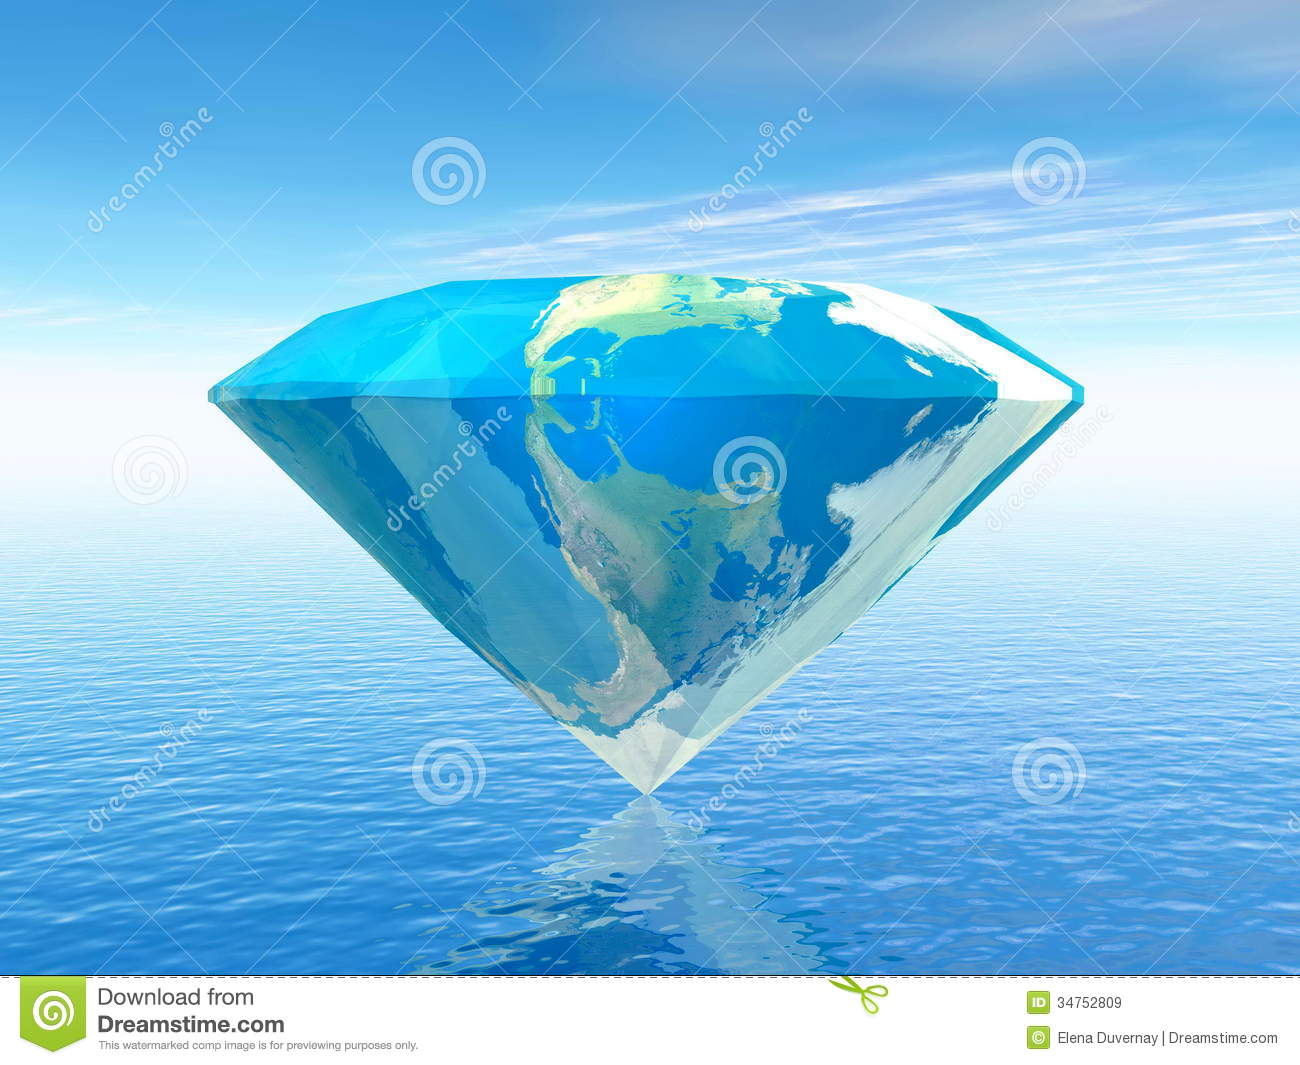 Diamond shape with earth texture upon the ocean.